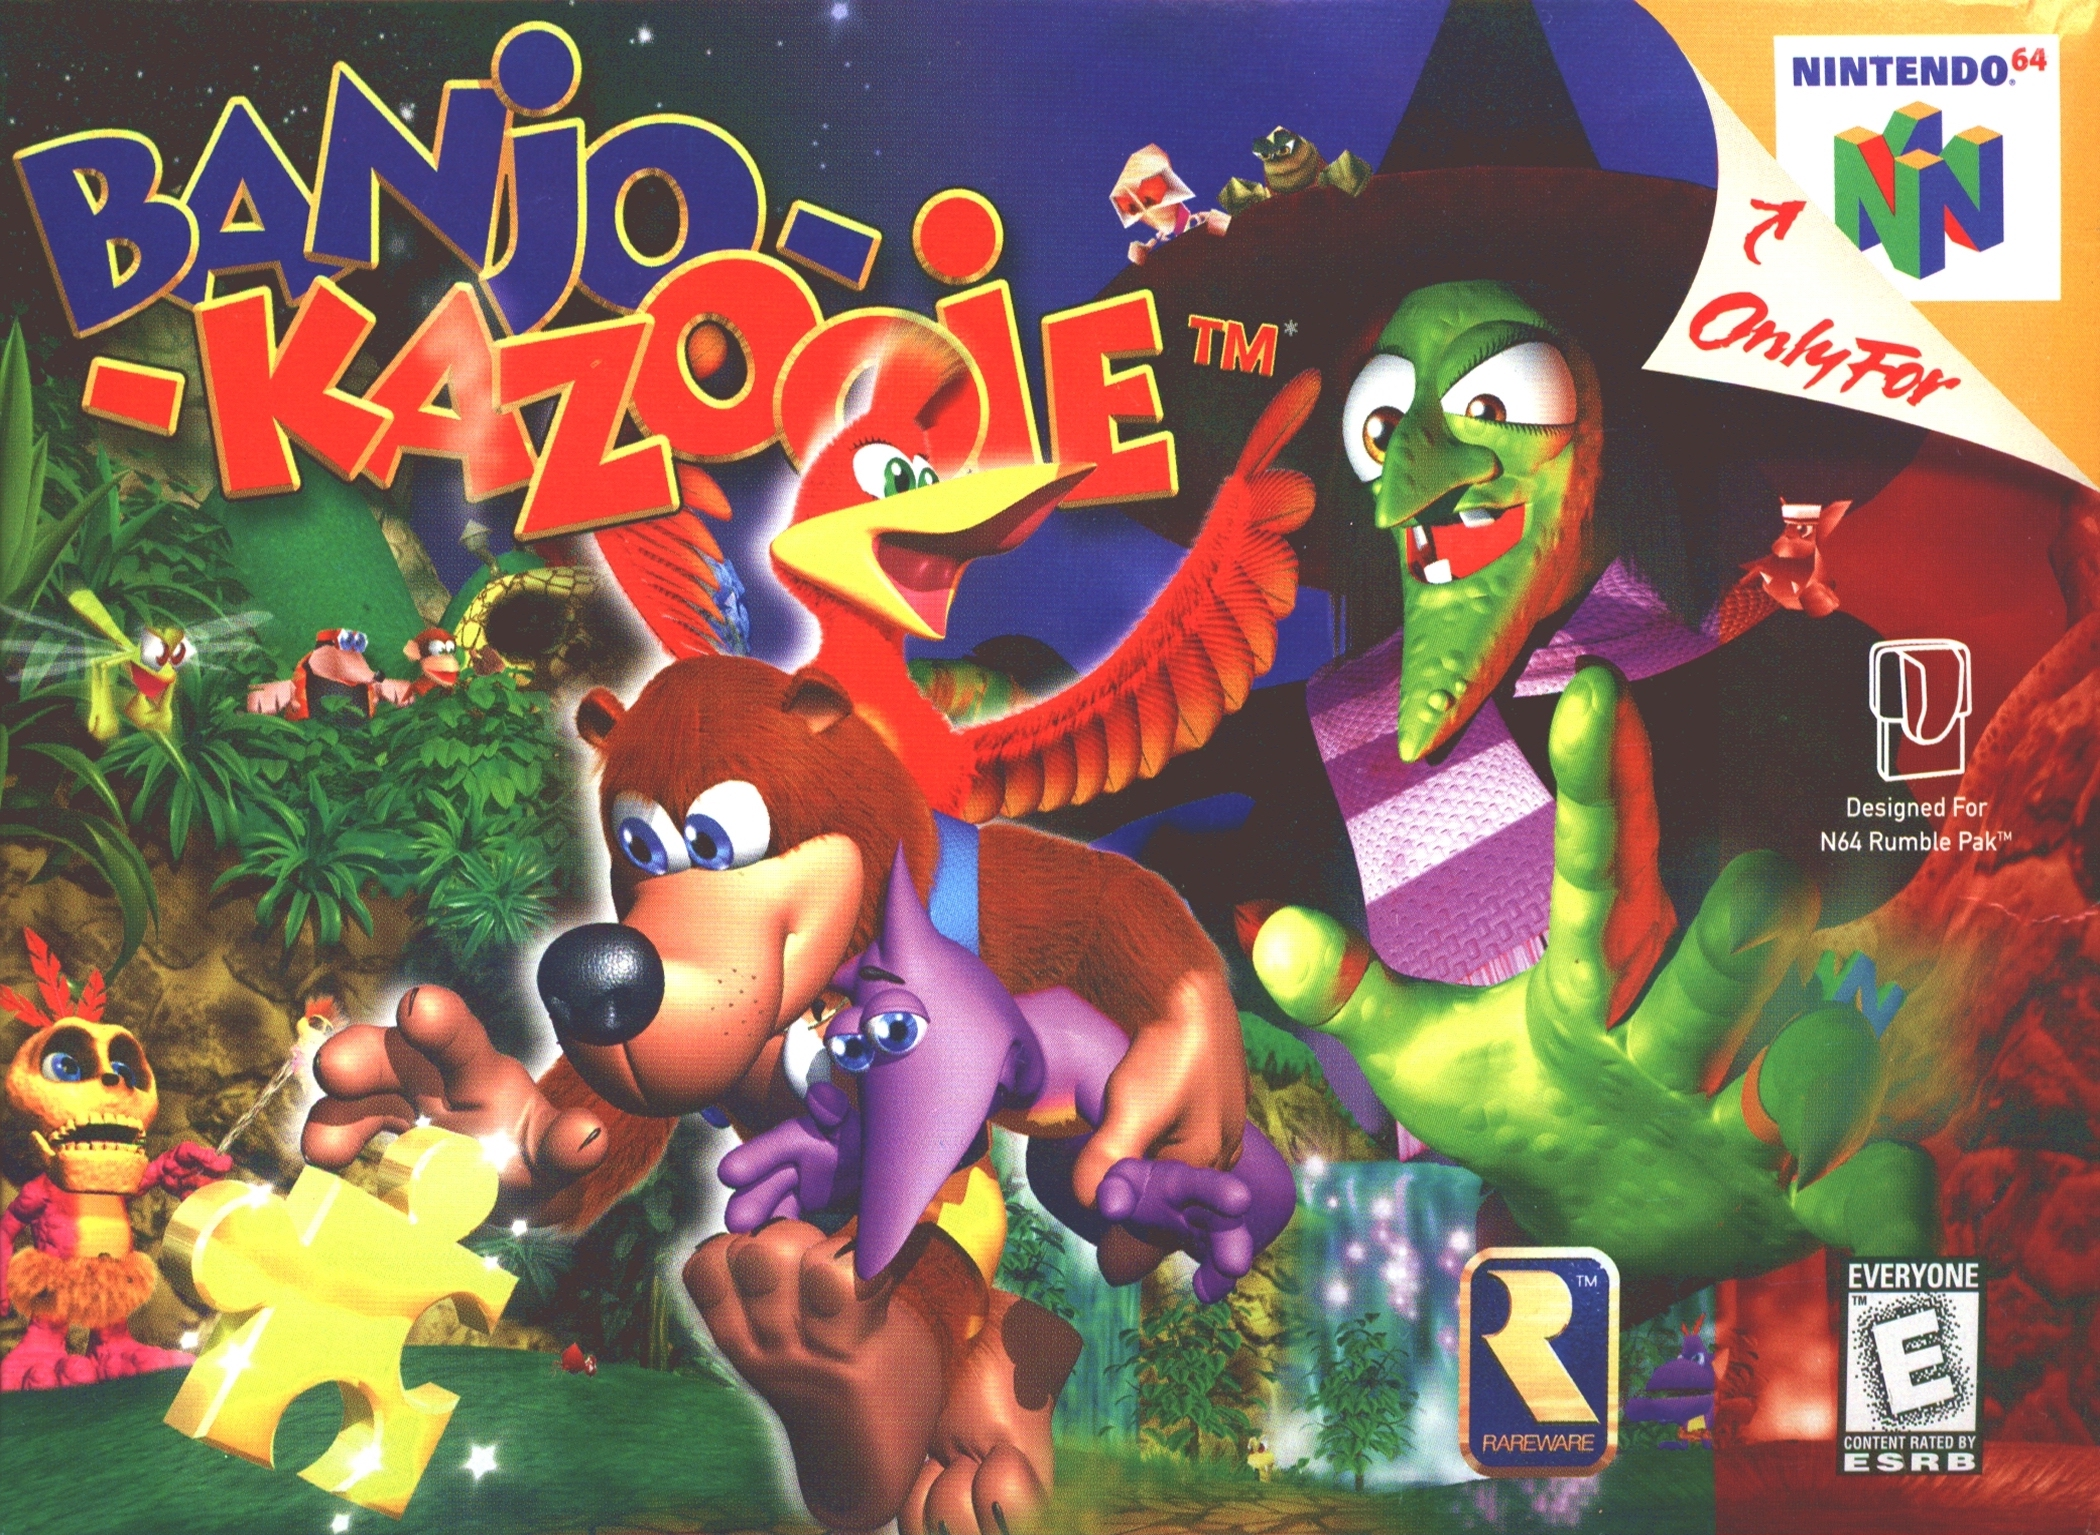 Box artwork for Banjo-Kazooie.